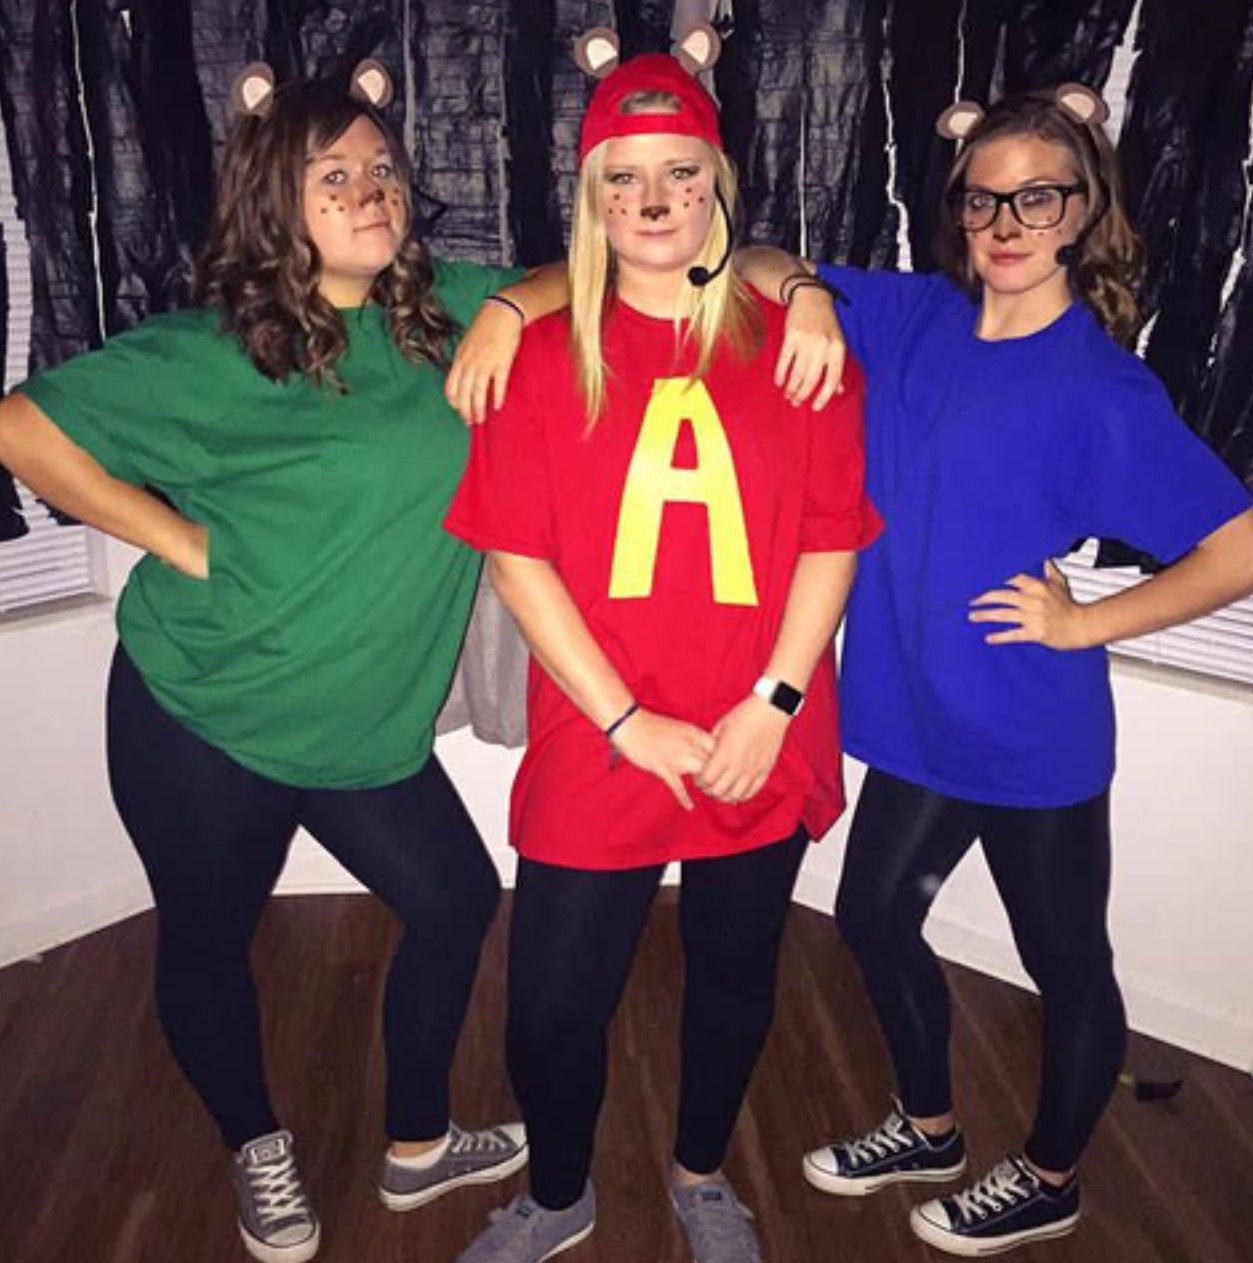 Alvin And The Chipmunks Halloween Costume For Three People Halloween Costumes Friends Trio Halloween Costumes Cute Halloween Costumes